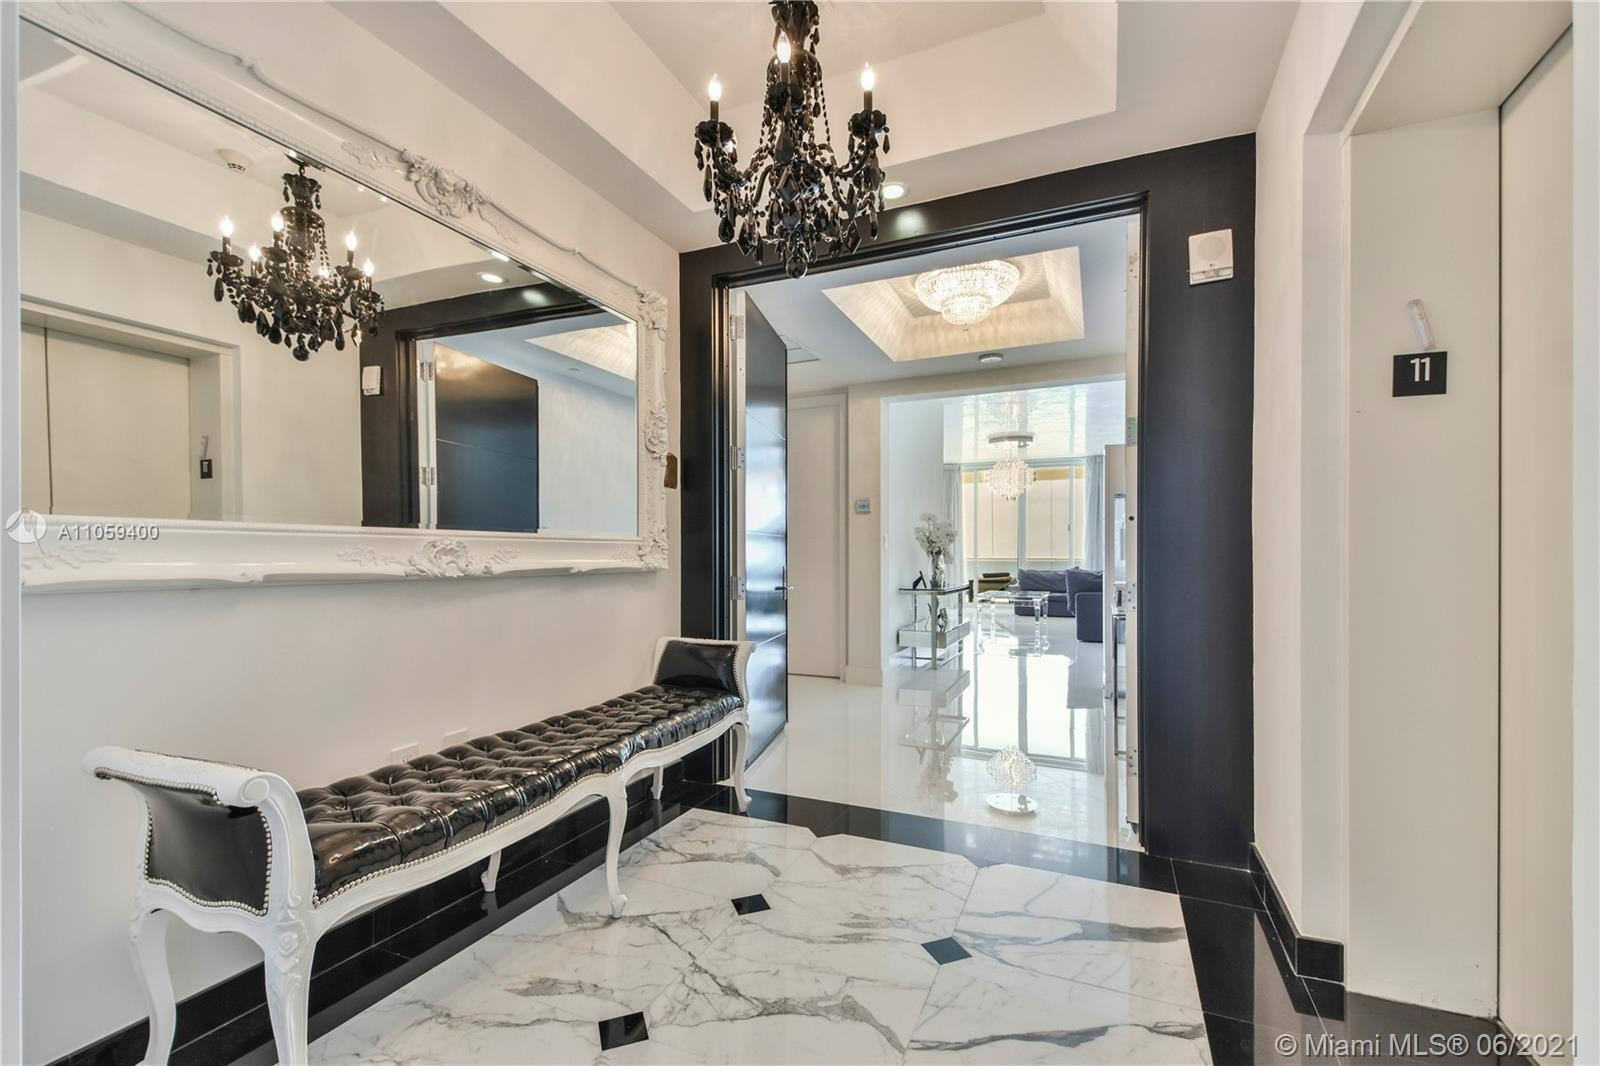 ONE OF A KIND SPECTACULAR TURN KEY 2 BED + DEN + 3 FULL BATH RESIDENCE, REMODELED WITH LUXURIOUS FIN